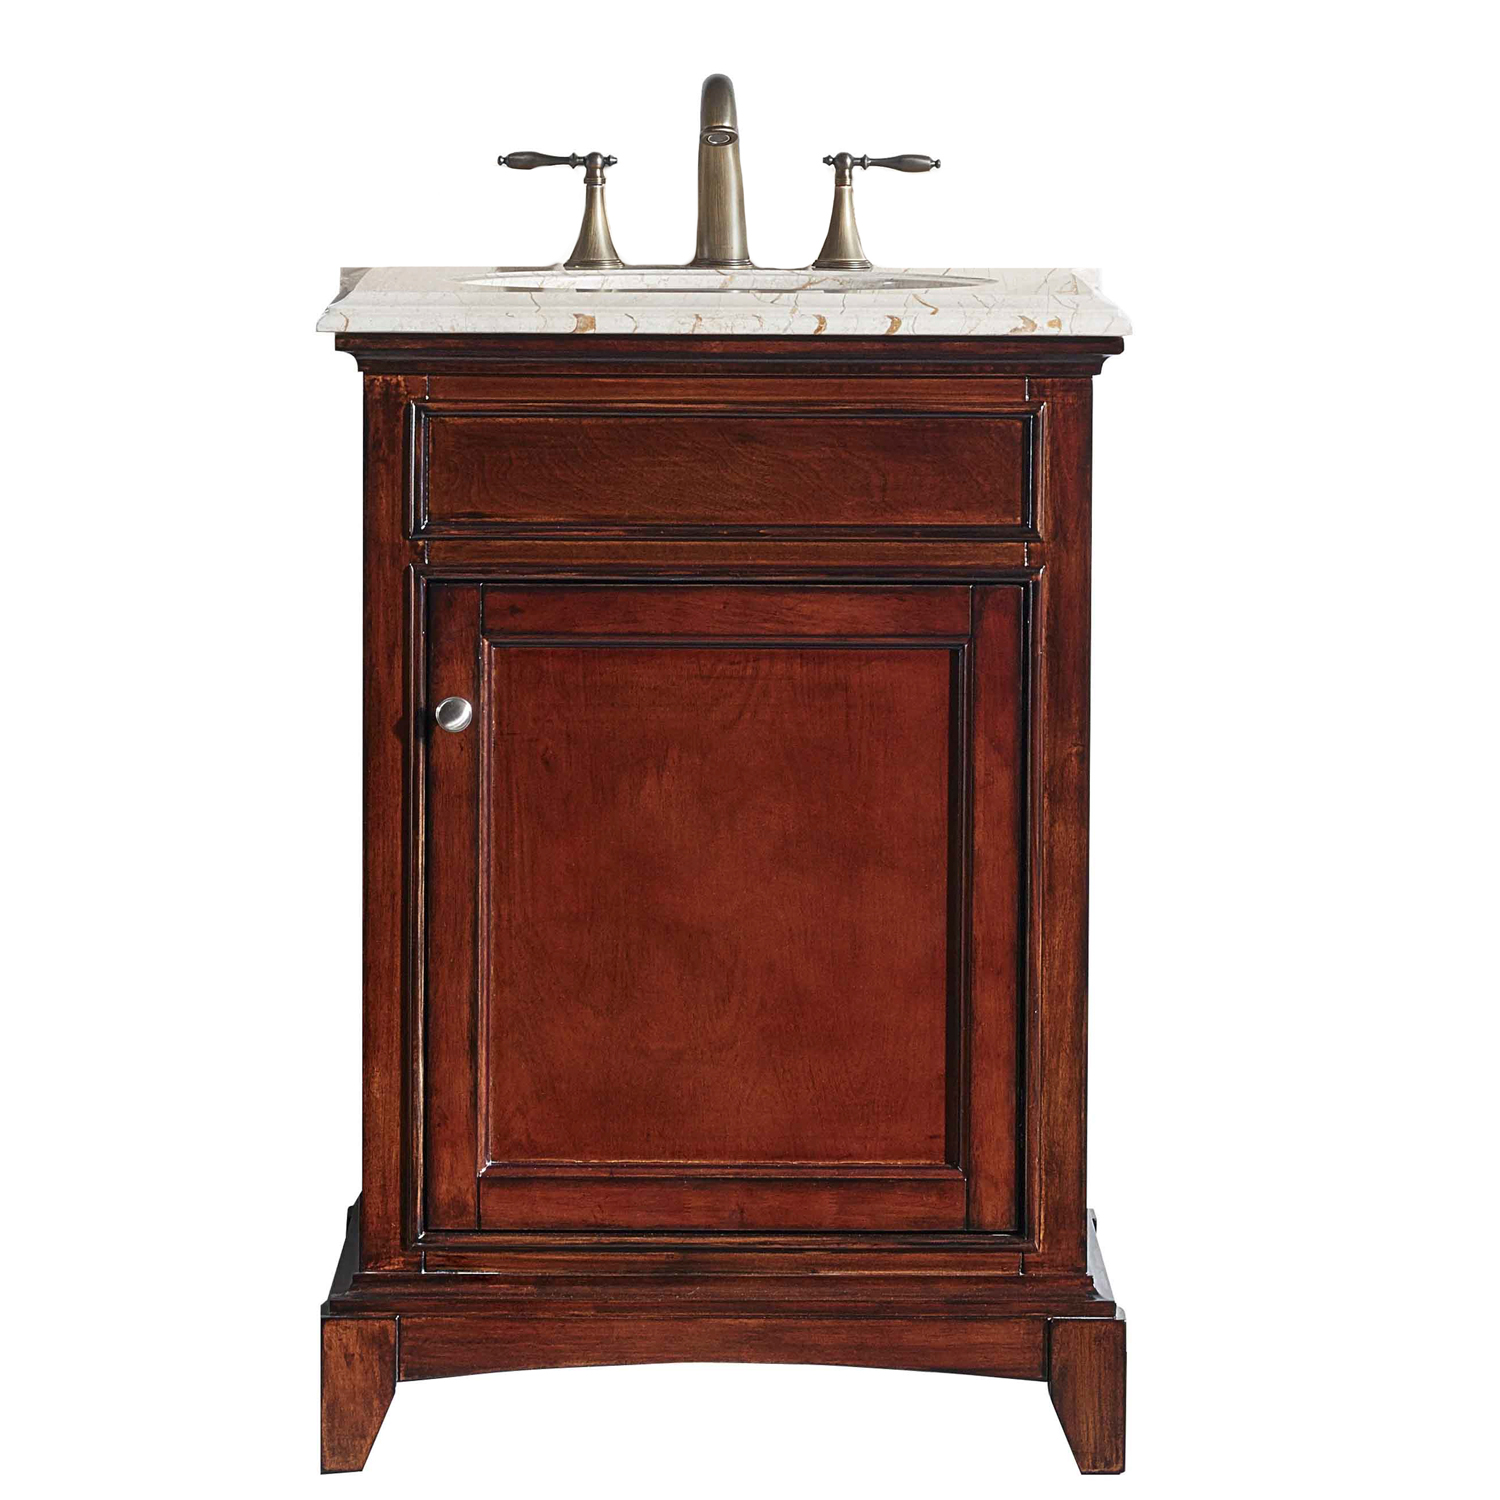 Eviva Elite Stamford 24 Brown Solid Wood Bathroom Vanity Set With Double Og Crema Marfil Marble Top White Undermount Porcelain Sink Decors Us